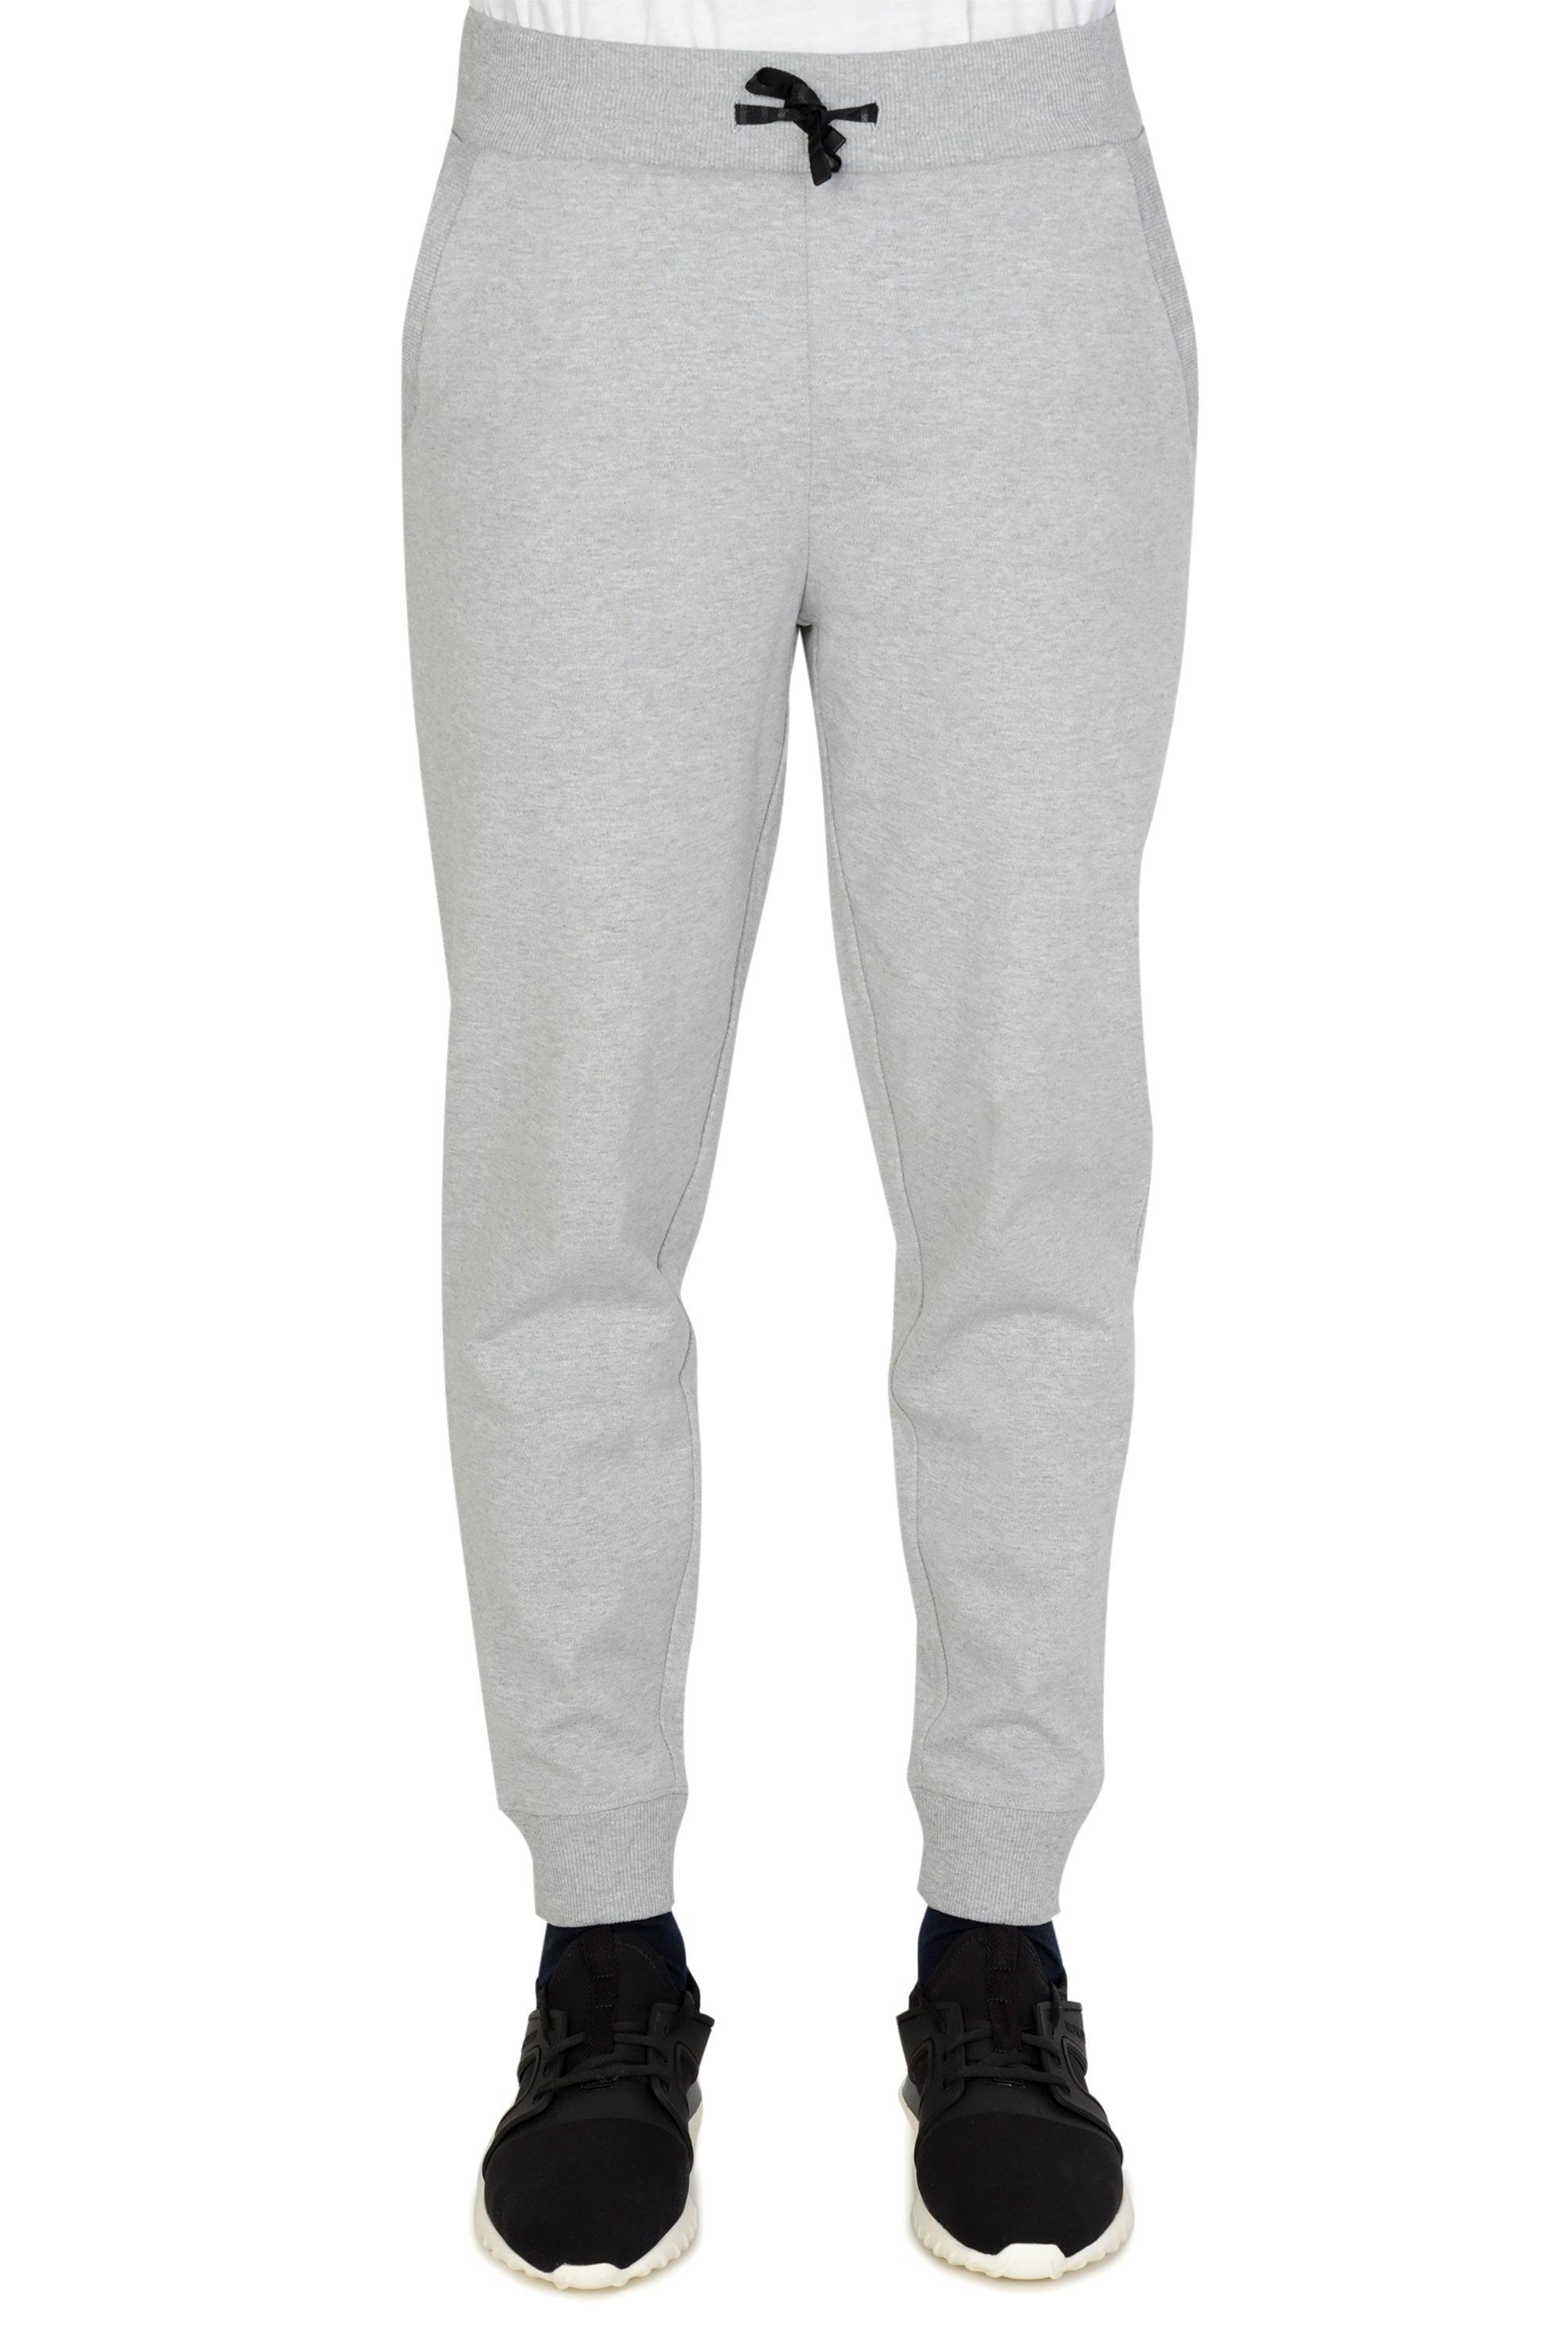 Mens Doak Sports Trousers HUGO BOSS Outlet Cheap Online Cheap Sale Best Store To Get Popular Cheap Online ksVVWH